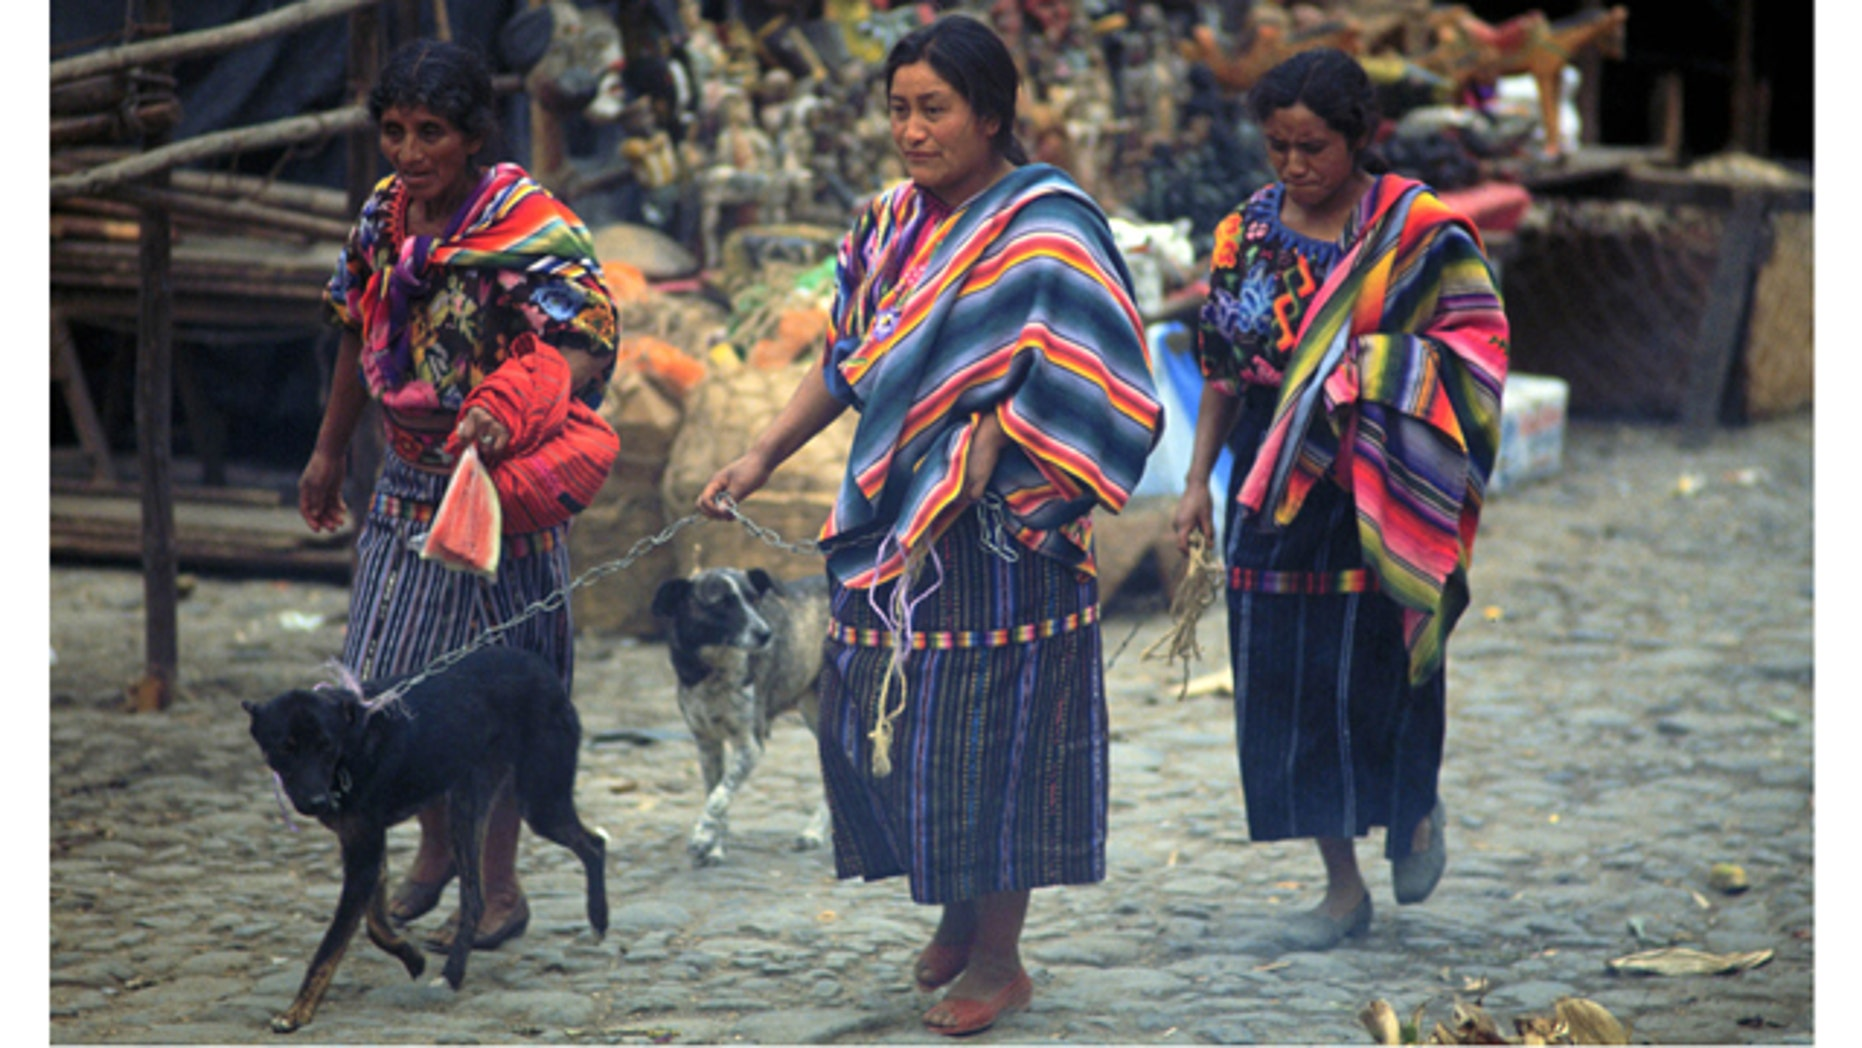 In Guatemala, height differences between the wealthiest women and the poorest was 8 centimeters, or about 3 inches, with the wealthiest women averaging 5 feet 1 inches and the poorest 4 feet 8 inches.